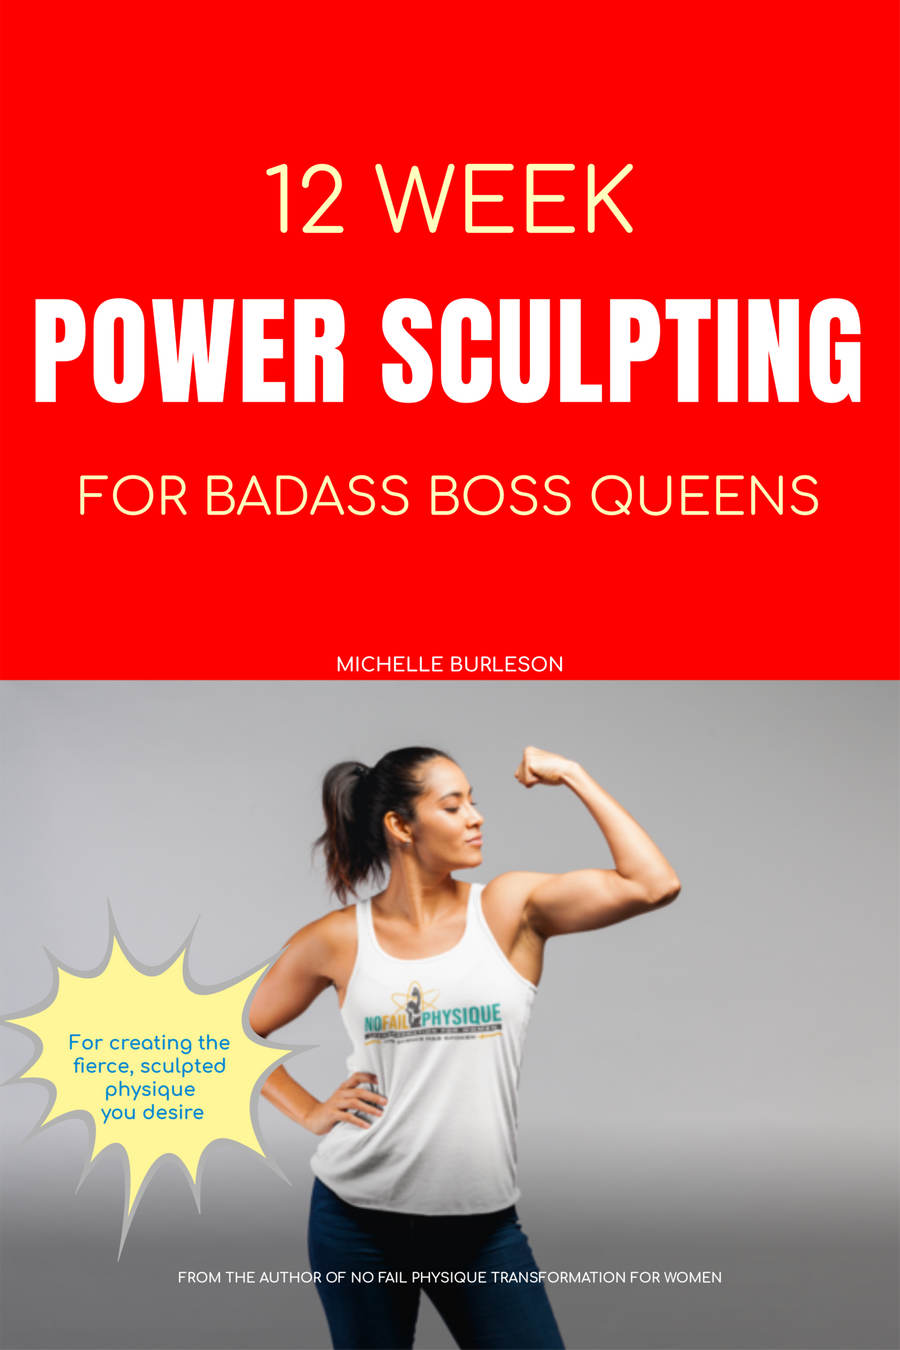 12 Week Power Sculpting for Women: The Secret Blueprint for Lean Muscle Gains